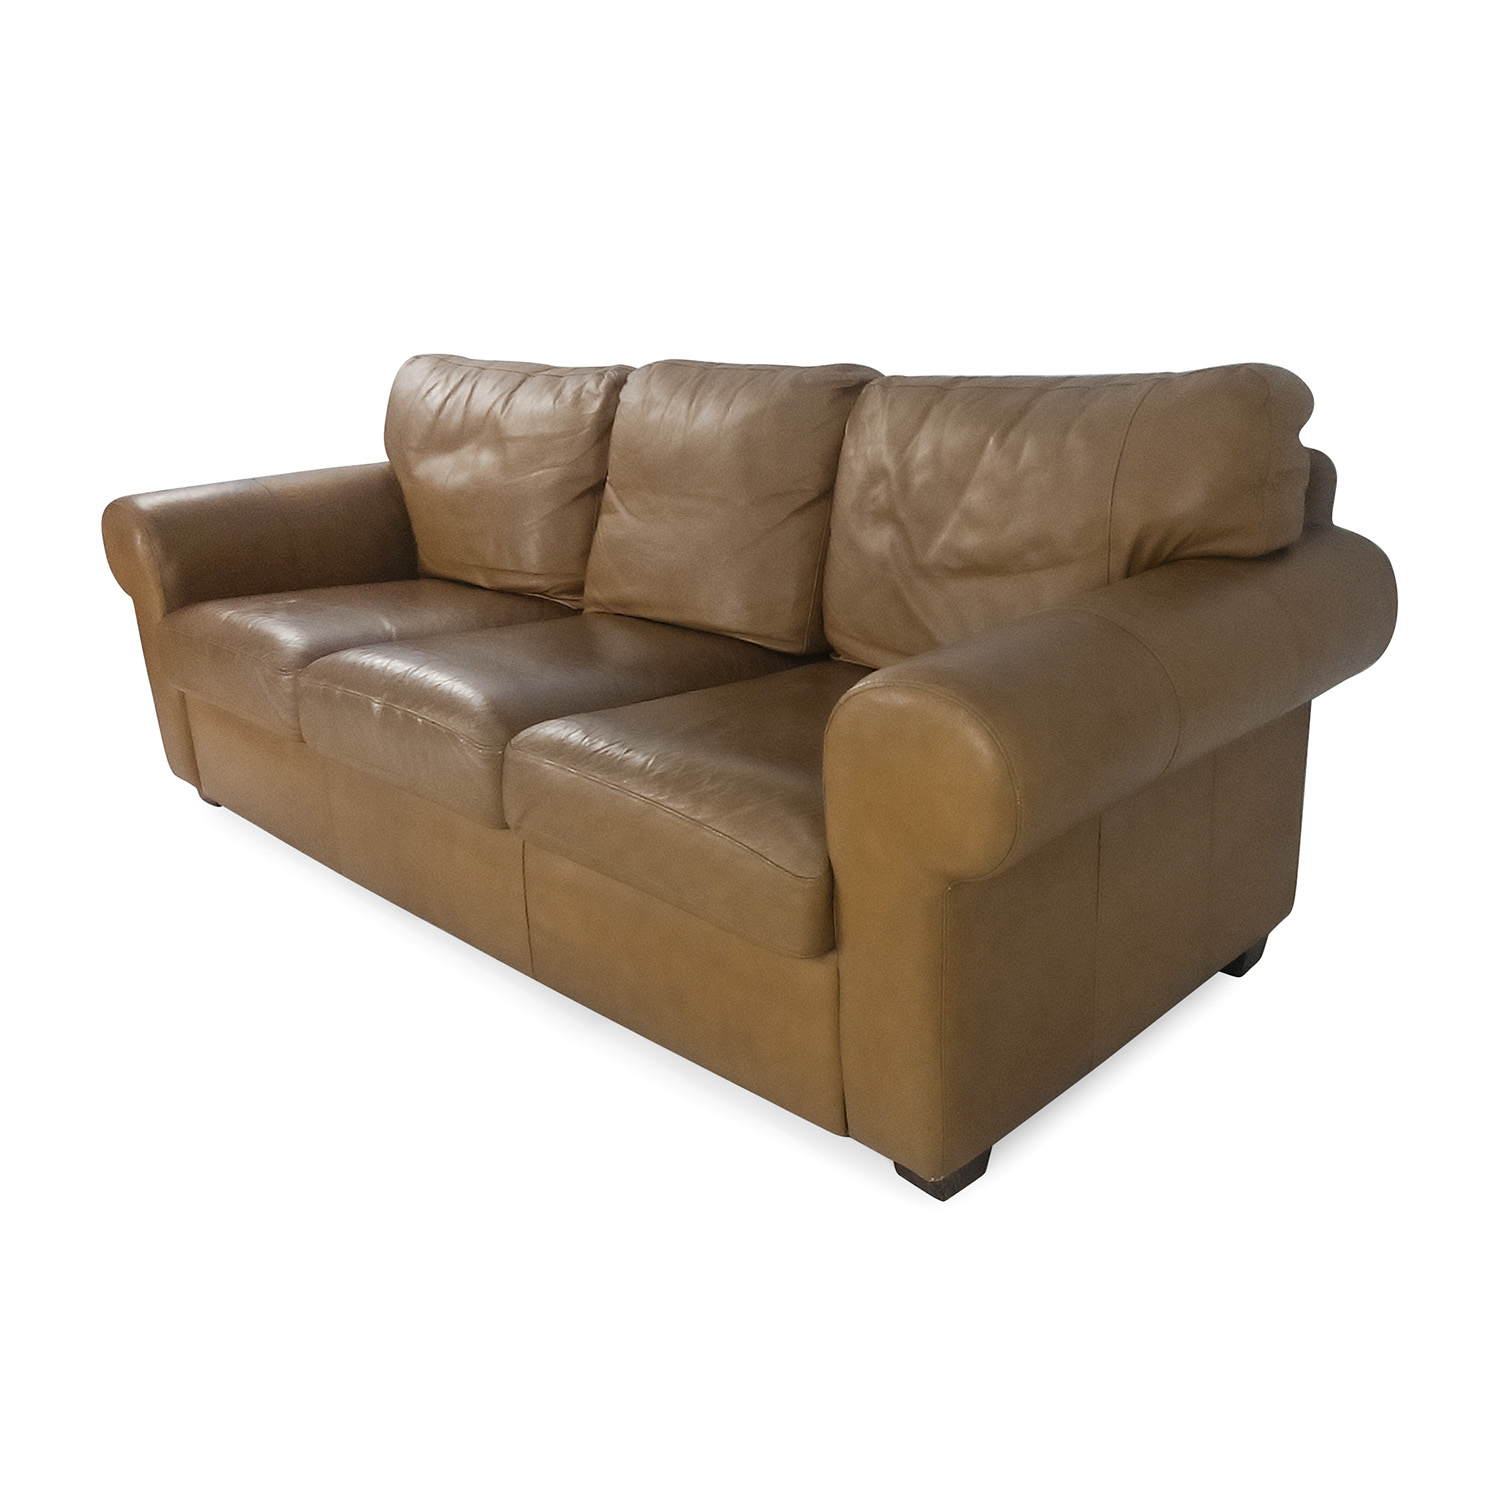 54 Off Crate And Barrel Crate And Barrel Leather Couch